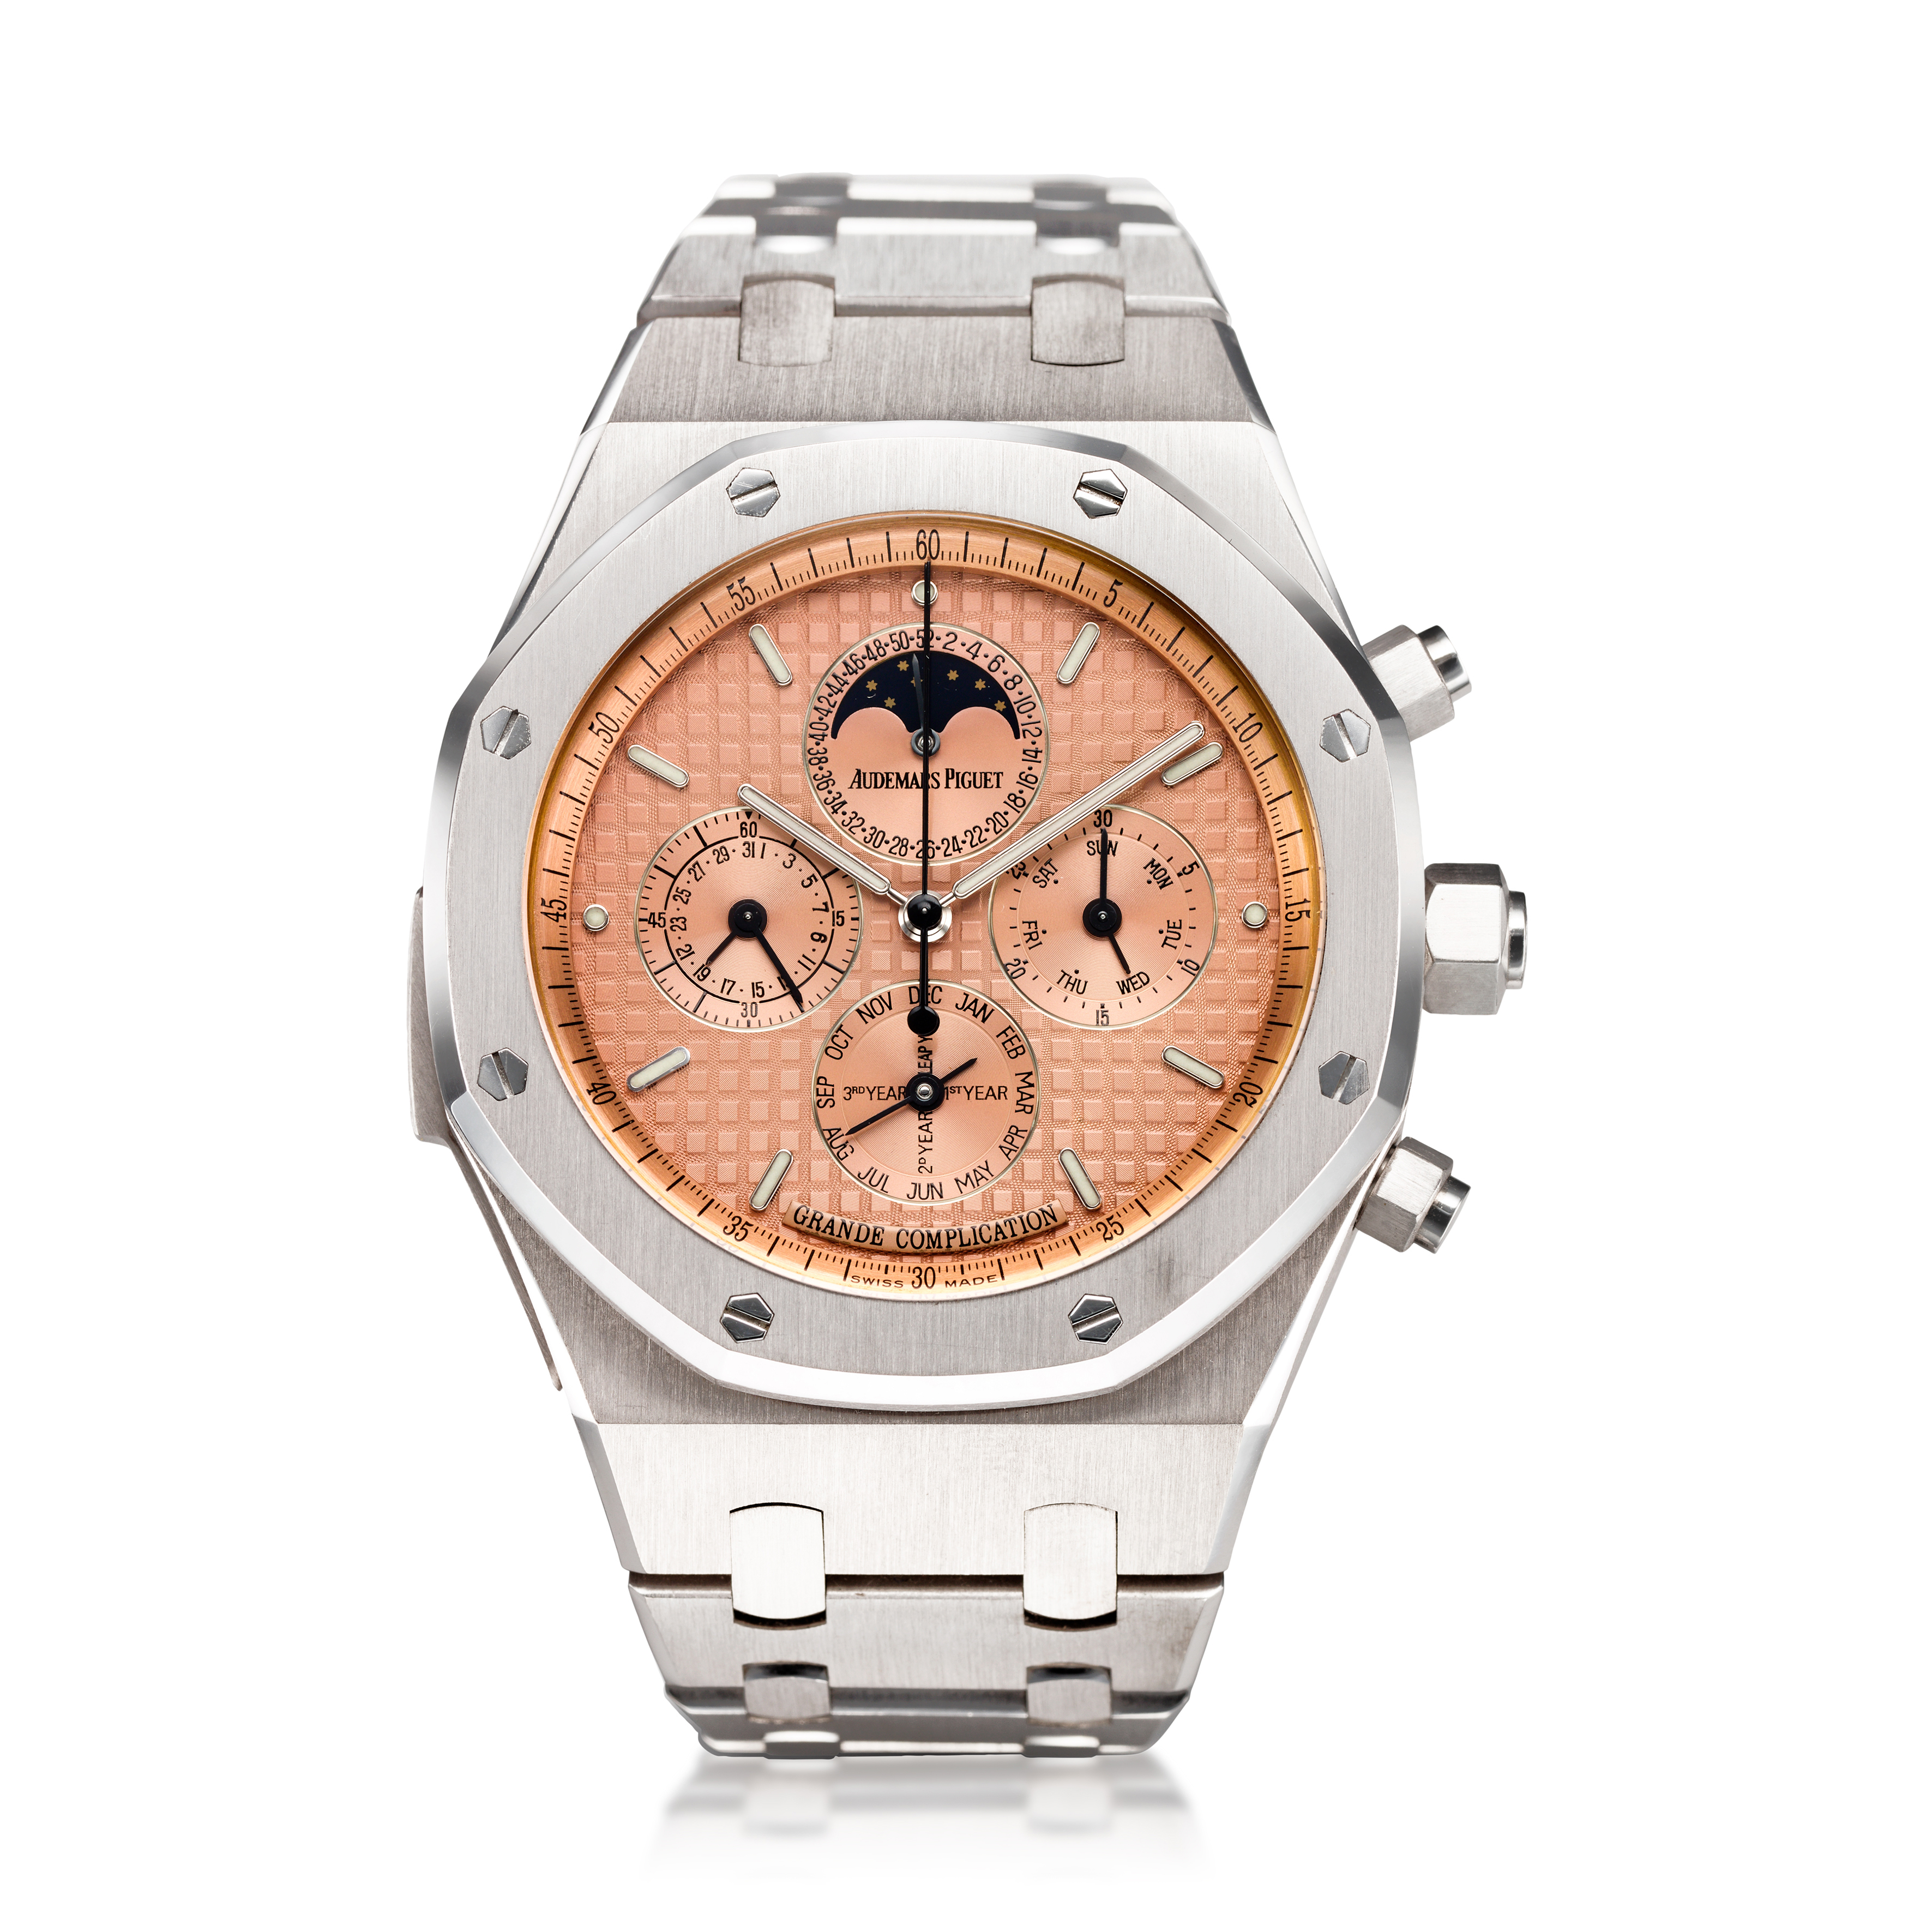 View full screen - View 1 of Lot 113. REFERENCE 25865BC.OO.1105BC.01ROYAL OAK GRAND COMPLICATION AN IMPRESSIVE AND HEAVY WHITE GOLD AUTOMATIC MINUTE REPEATING PERPETUAL CALENDAR SPLIT SECONDS CHRONOGRAPH WRISTWATCH WITH BRACELET, MOON PHASES AND LEAP YEAR INDICATION, CIRCA 2004.